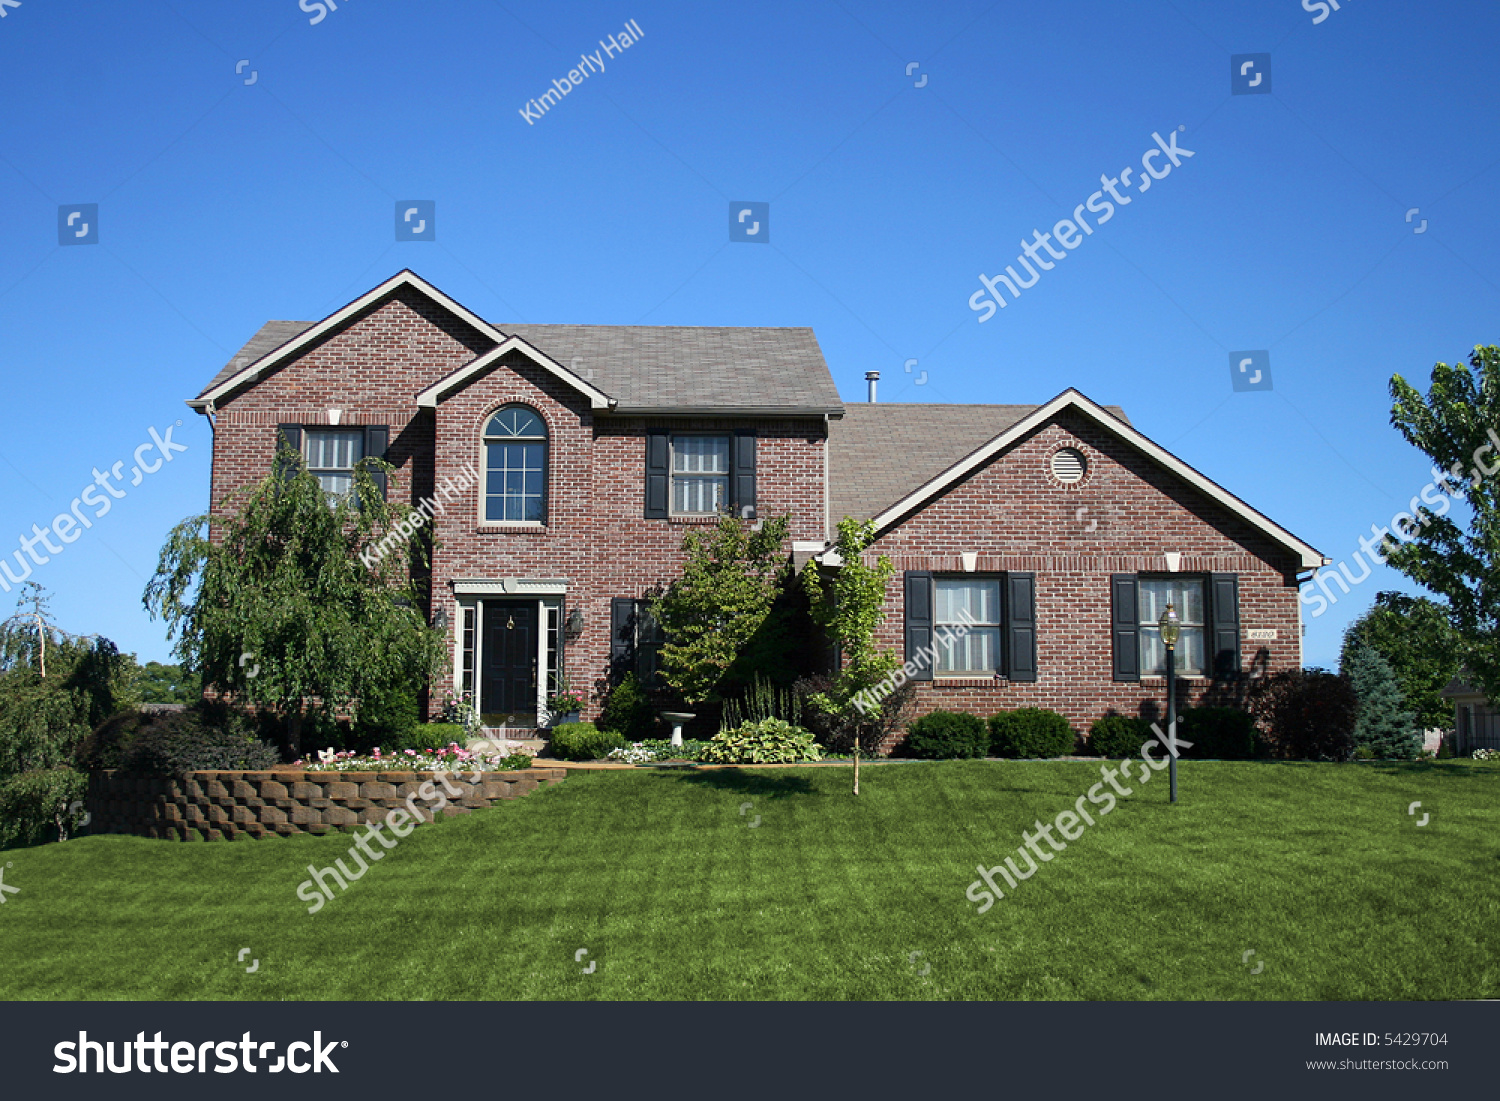 Beautiful brick twostory house stock photo 5429704 for Pretty two story houses